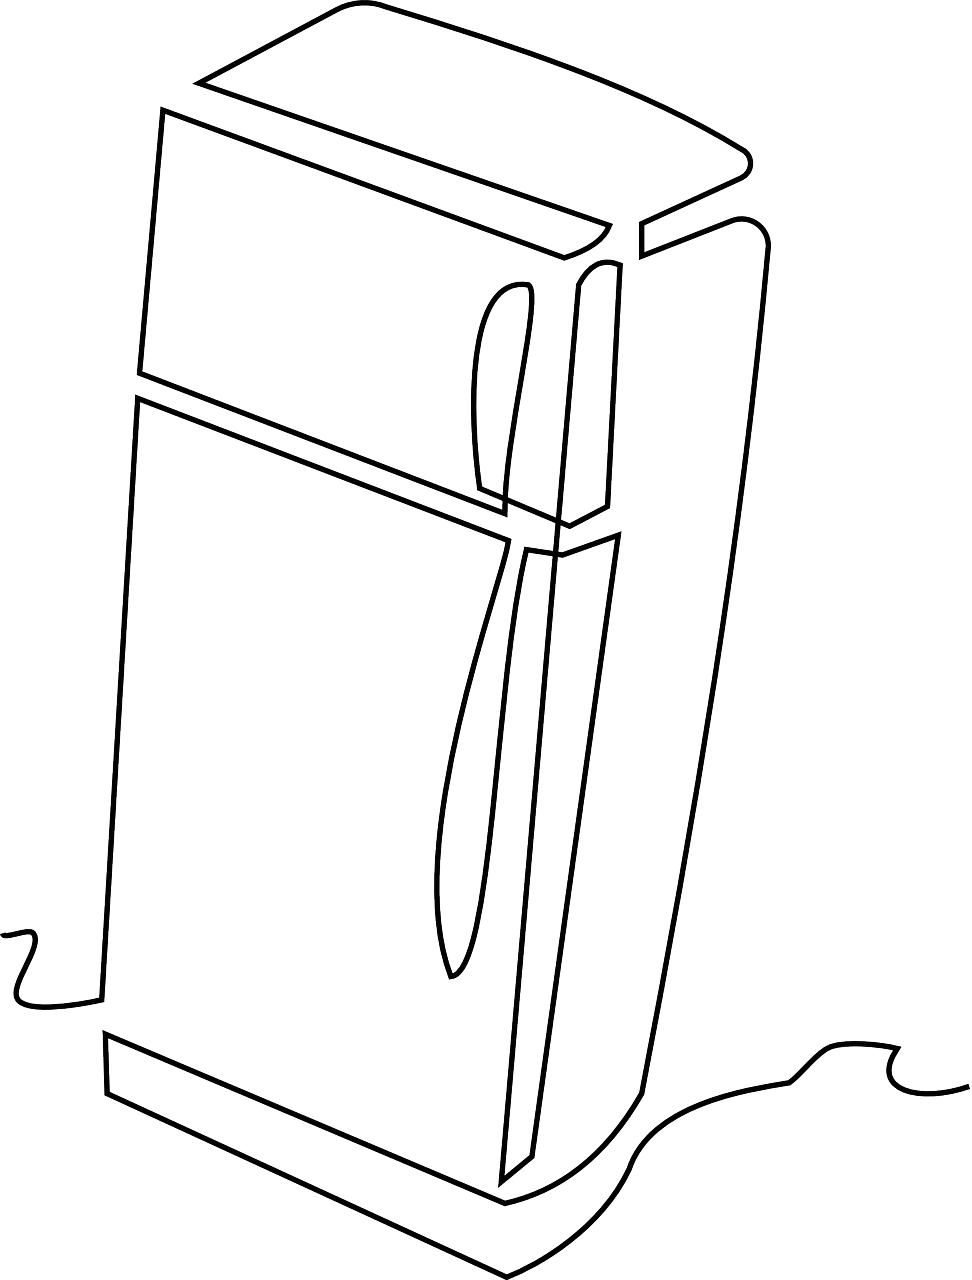 refrigerator kitchen clipart free picture